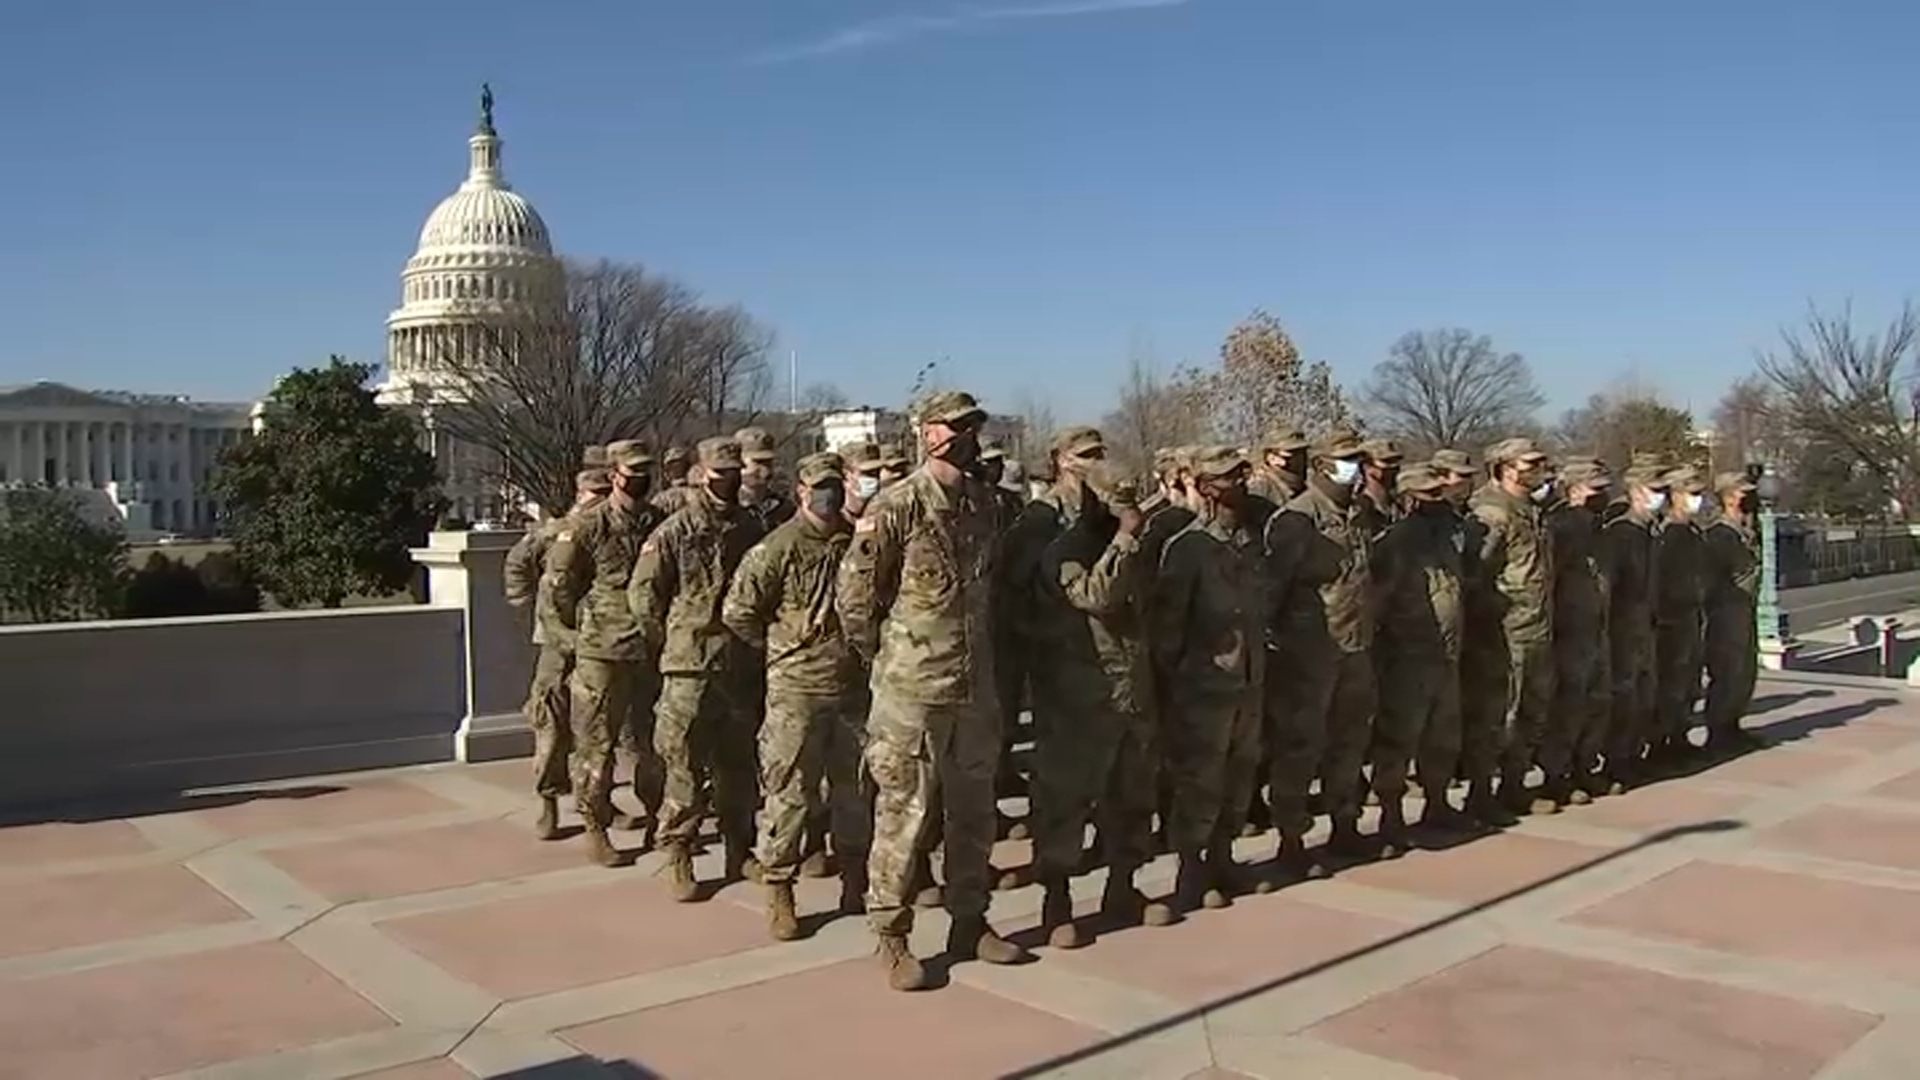 Inauguration Perimeter to Restrict Access to Downtown DC Amid Extended Security Clampdown